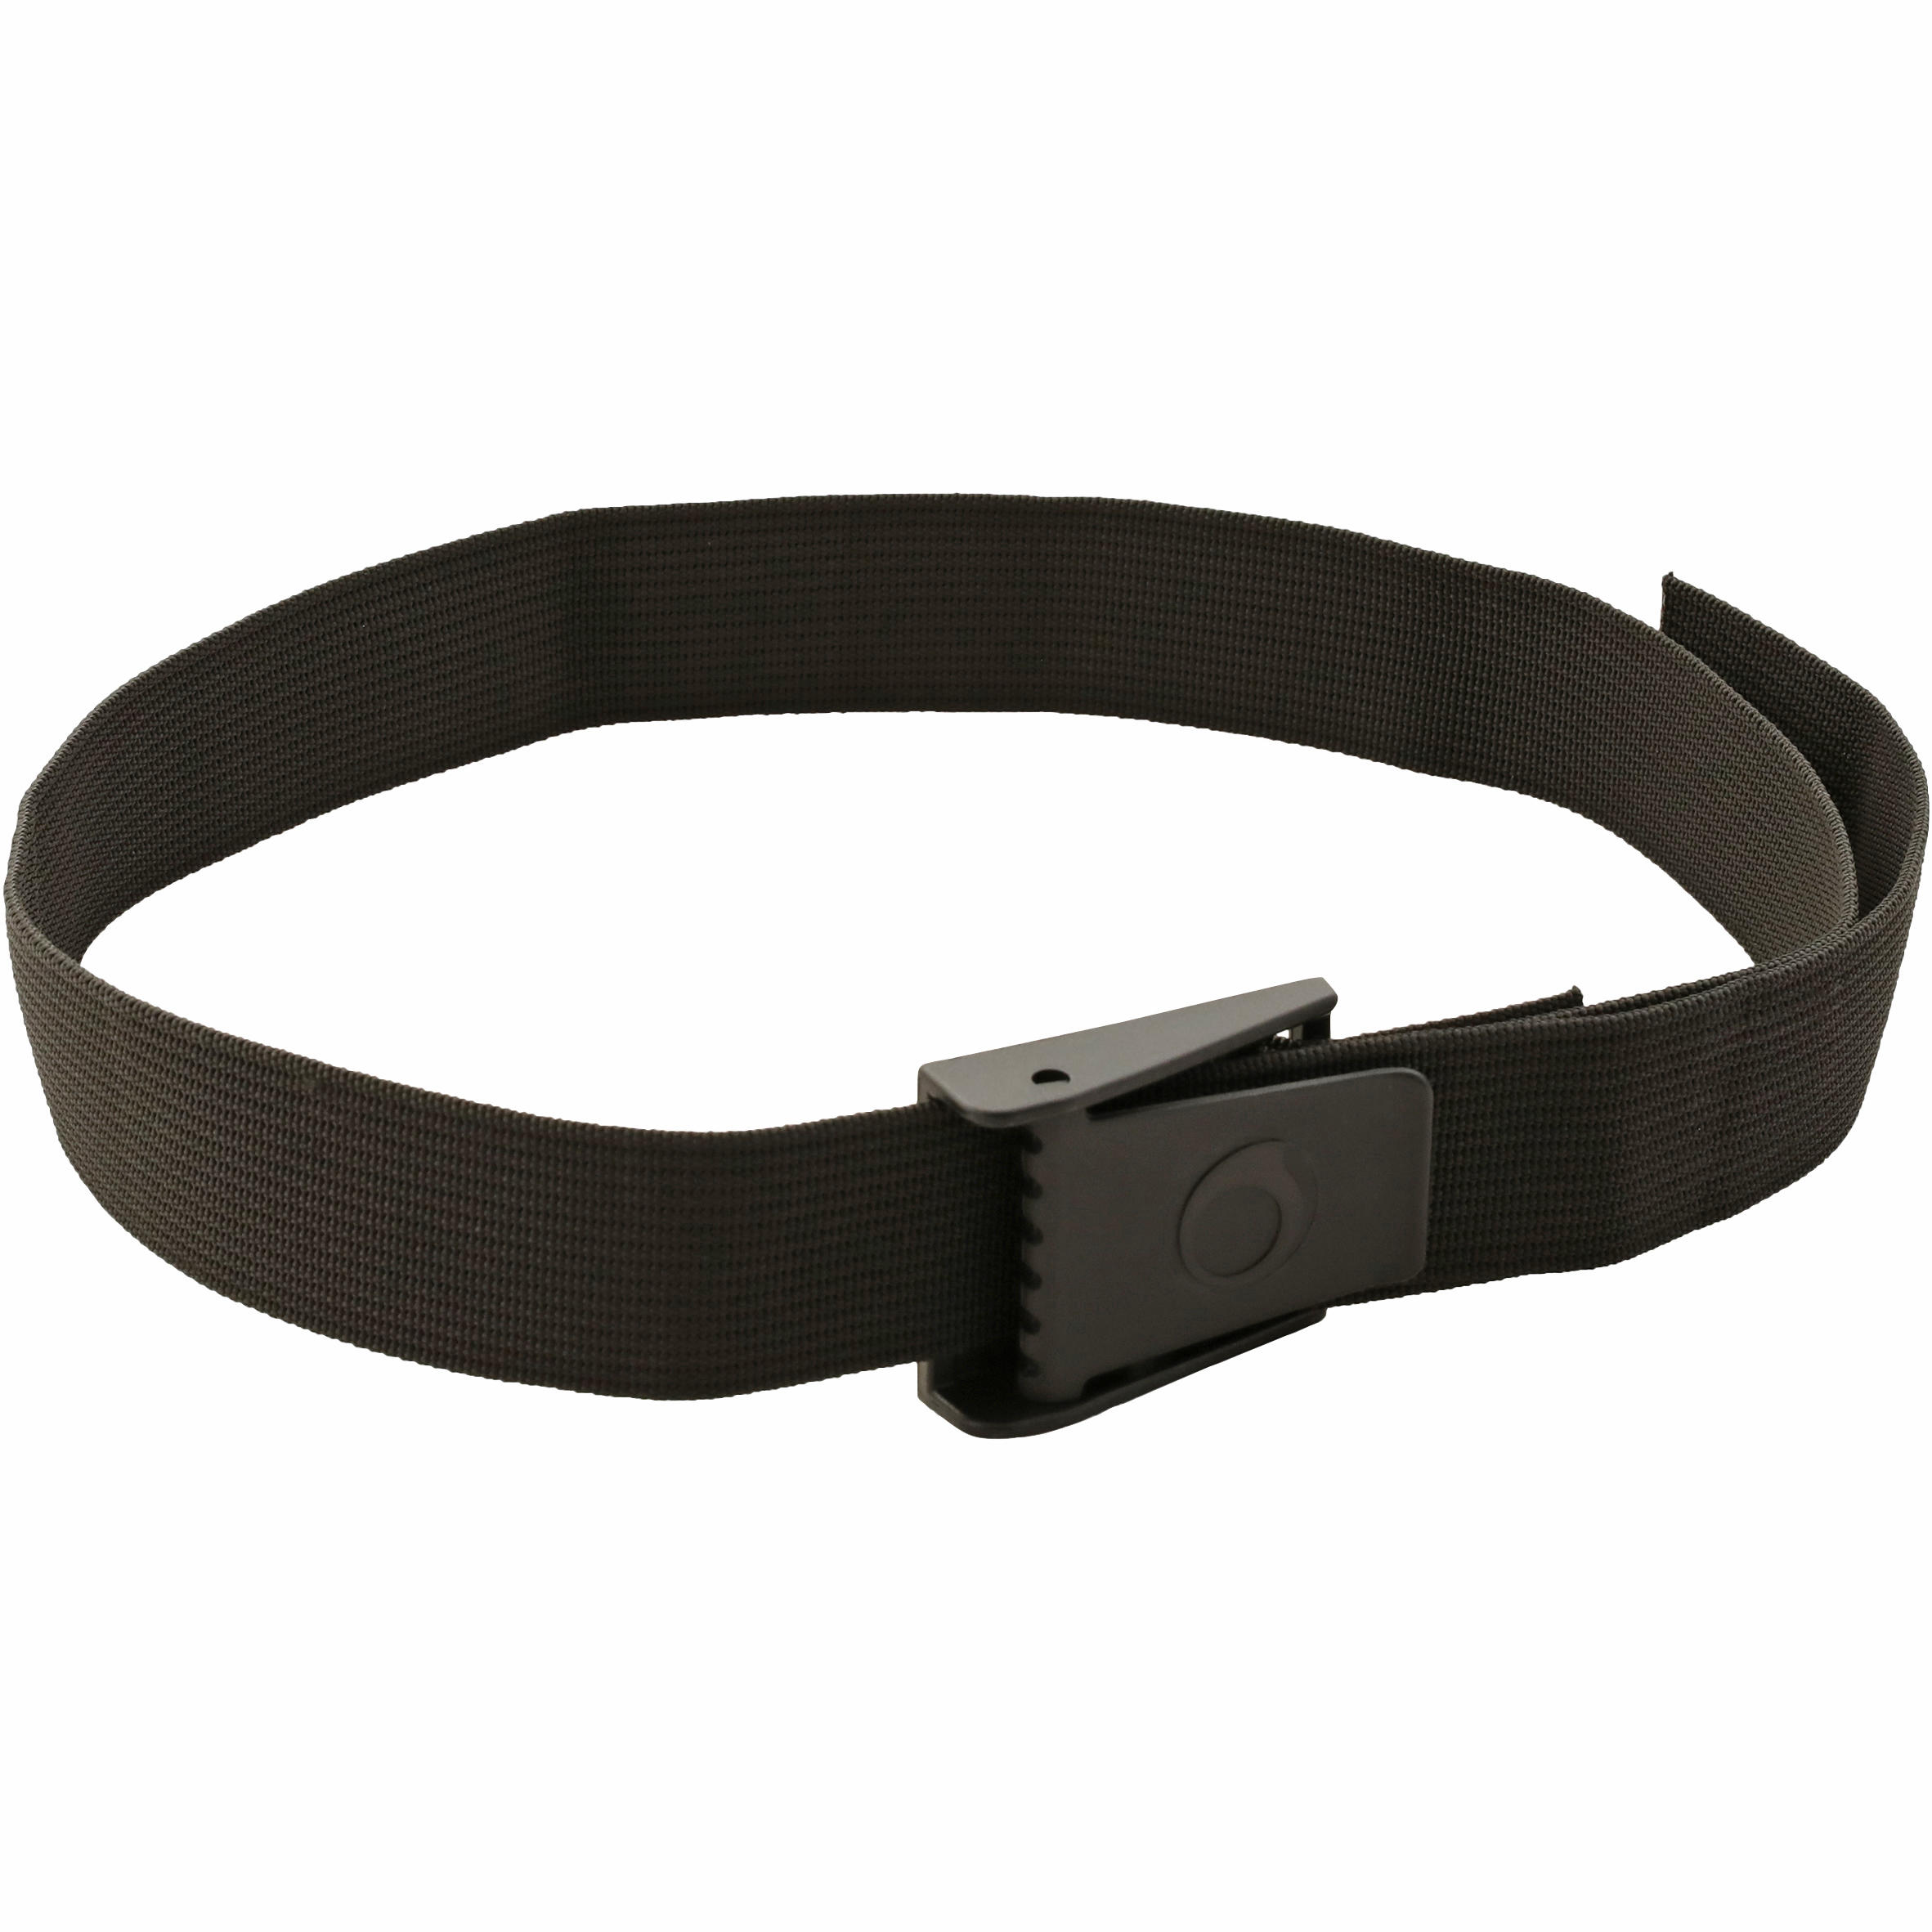 SCD 100 diving weight belt with plastic buckle